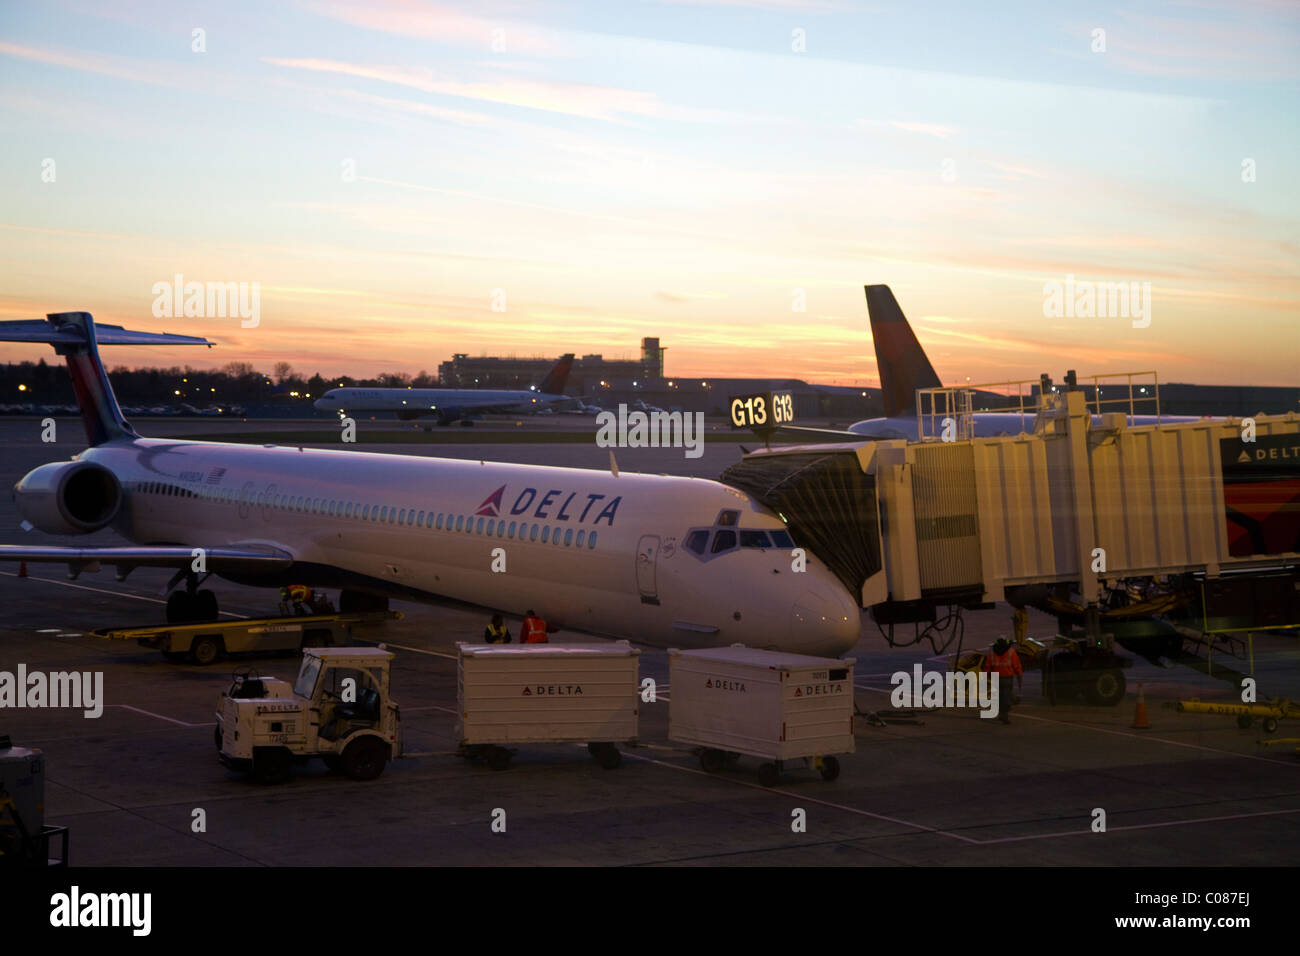 Delta airliner during sunset at the Minneapolis-Saint Paul International Airport located in Fort Snelling, Minnesota, - Stock Image